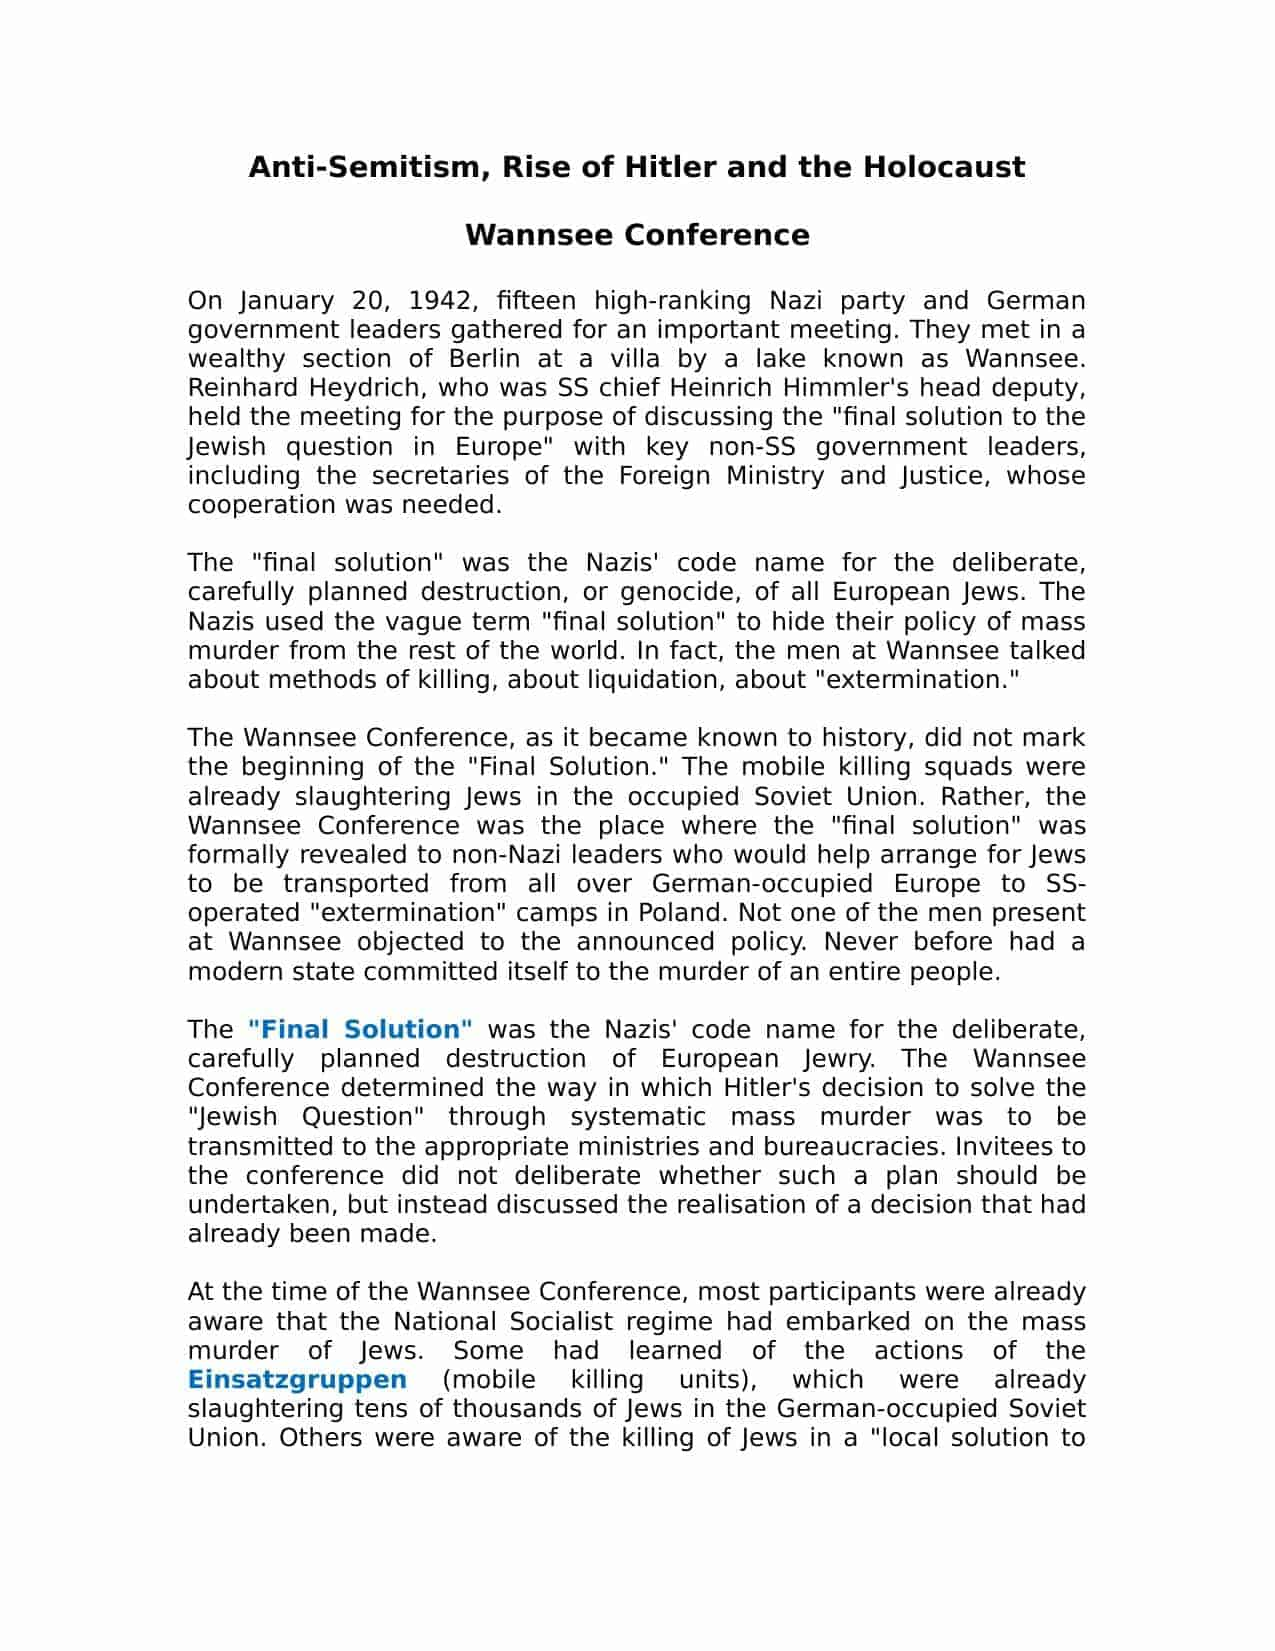 Wannsee Conference Facts Information Amp Consequences Worksheet